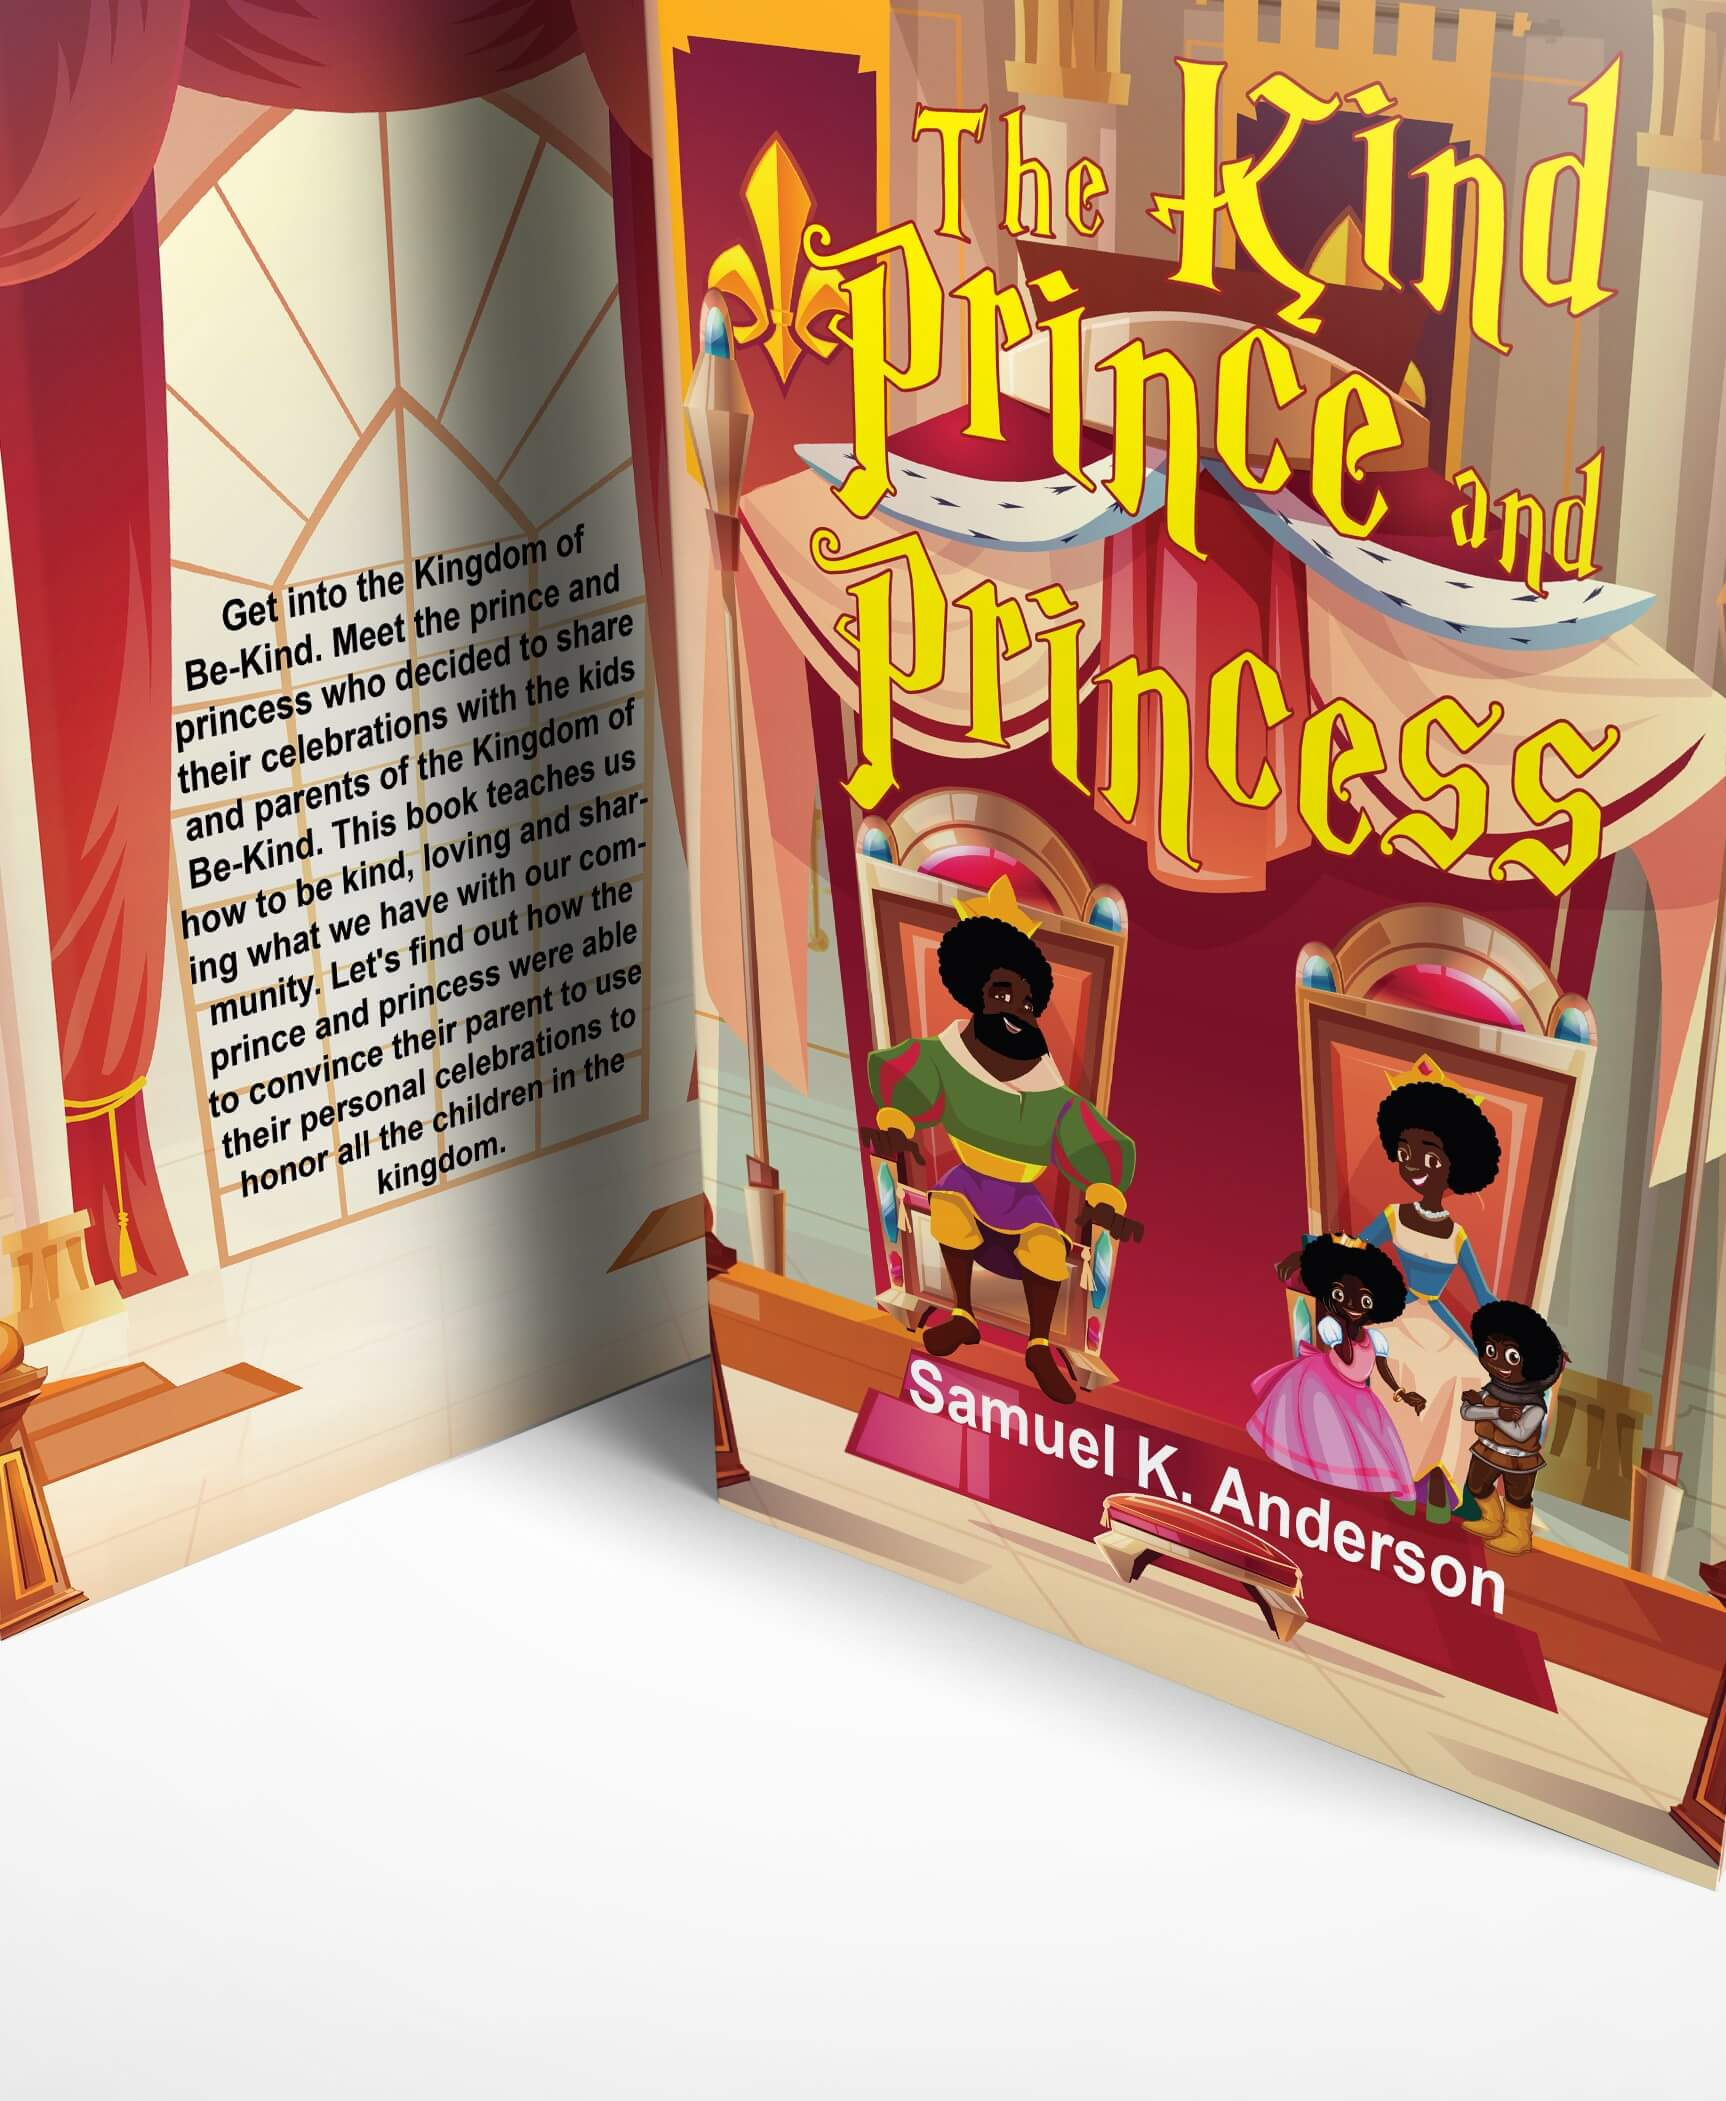 The Kind Prince and Princess - Special price promotion